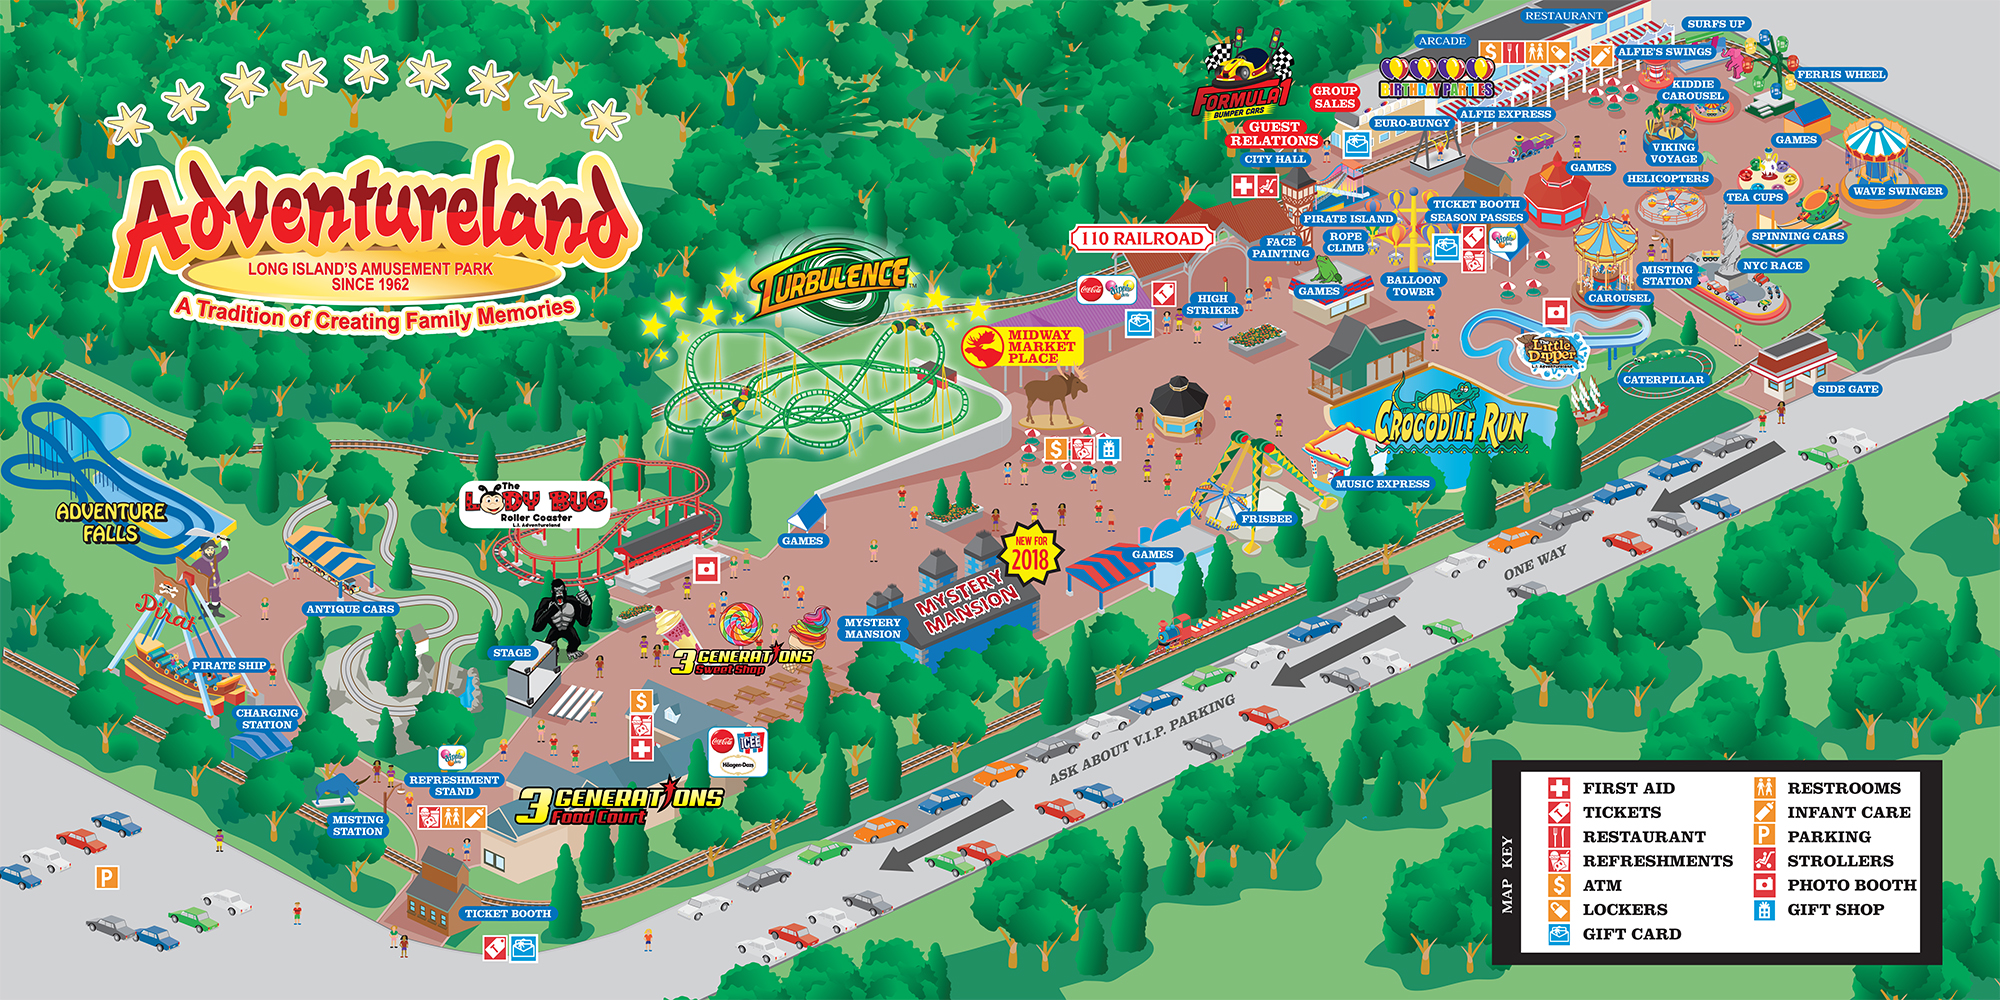 Map Of New York And Long Island.Adventureland Park Map Adventureland Amusement Park Long Island